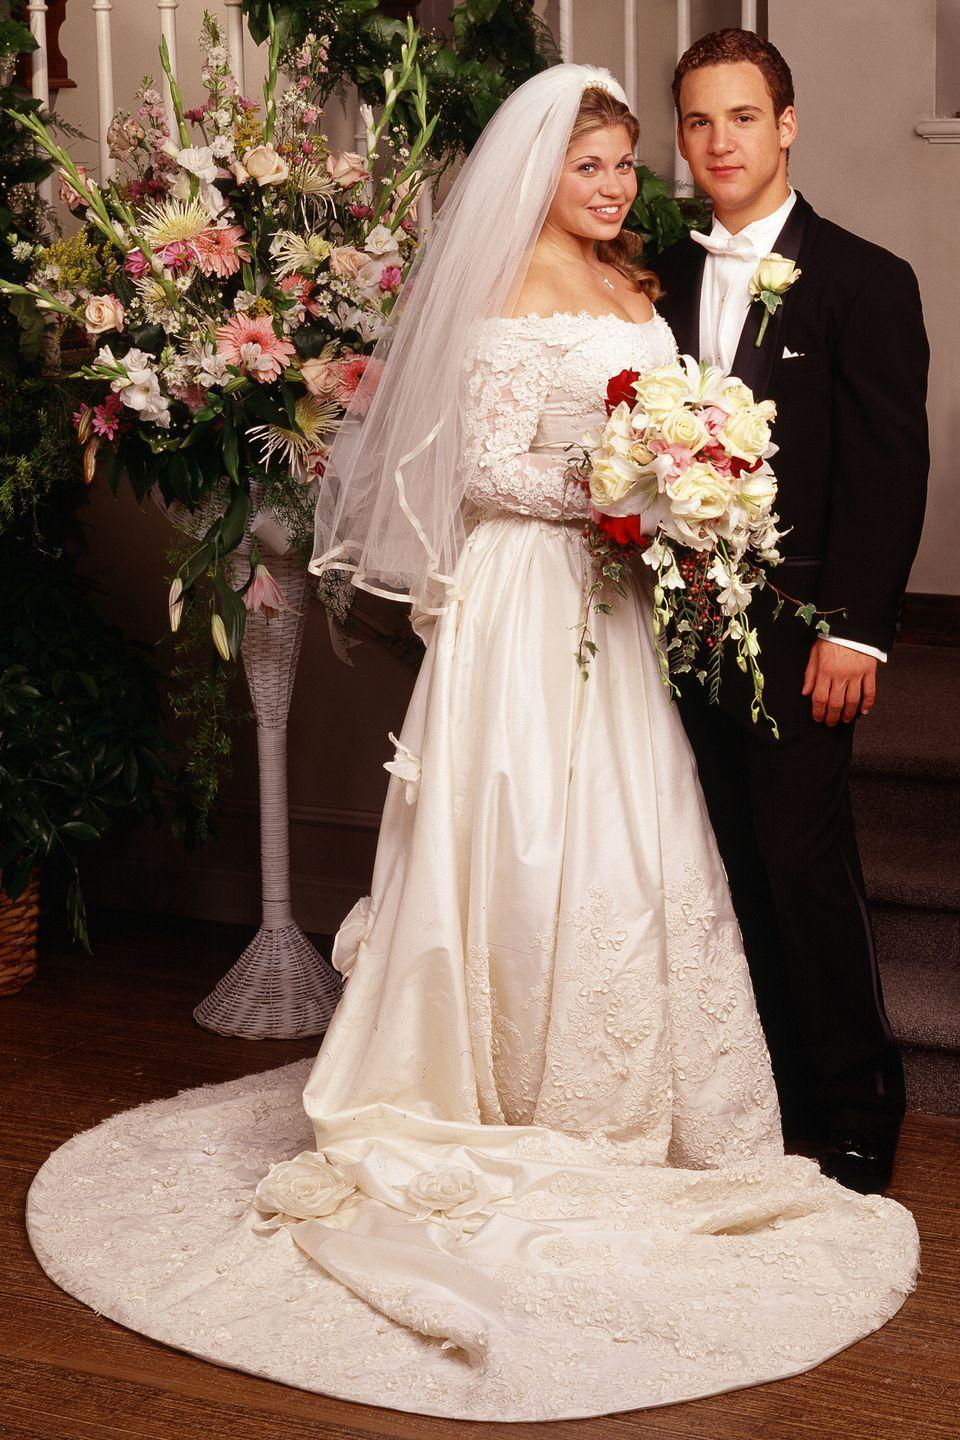 <p>Cory and Topanga seemed destined for each other when they met in Mr. Feeney's classroom in season 1—where Topanga first kissed him. They tied the knot in season 7, and she wore a lacy, long-sleeve, off-the-shoulder gown with a train. </p>